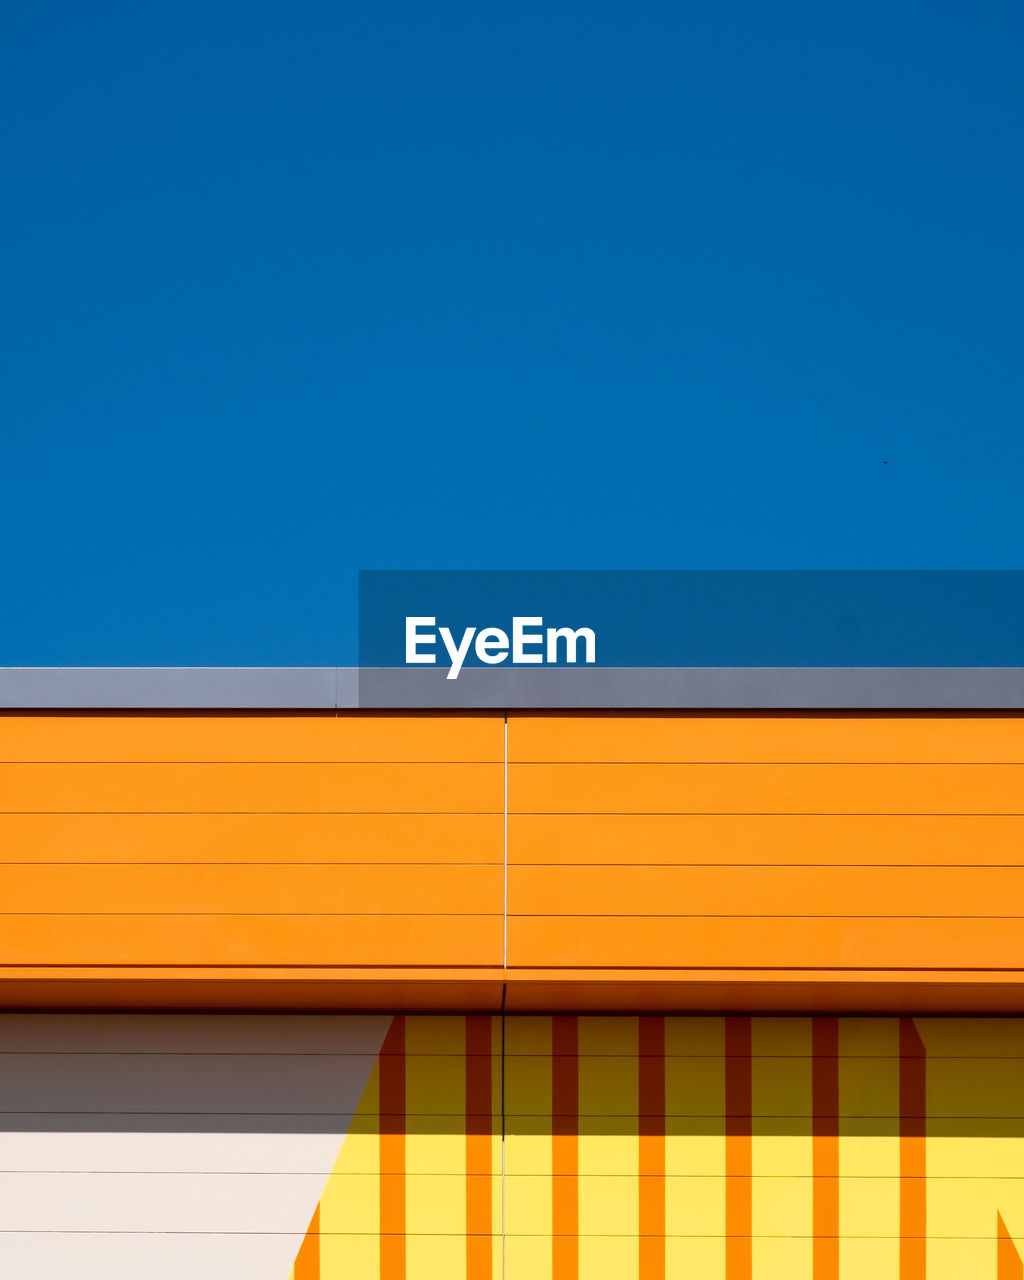 copy space, architecture, blue, built structure, clear sky, yellow, no people, multi colored, building exterior, wall - building feature, low angle view, sky, day, pattern, public transportation, outdoors, close-up, striped, orange color, building